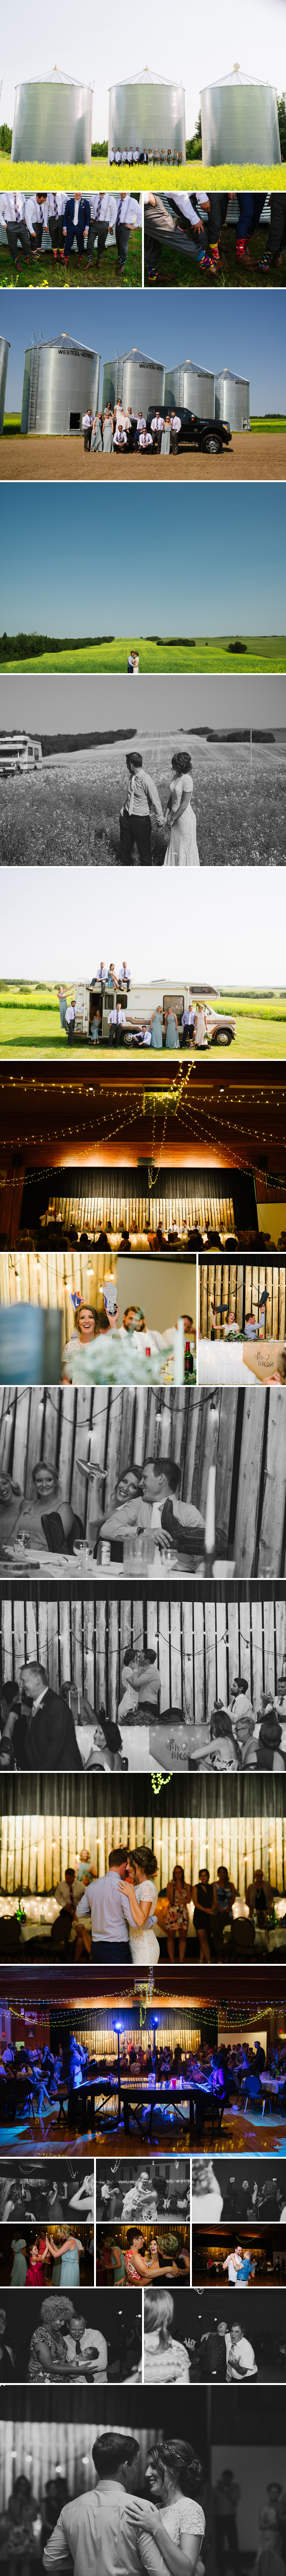 bbcollective_yeg_blog_2017_katelynandkyle_wedding_photographycomp003.jpg